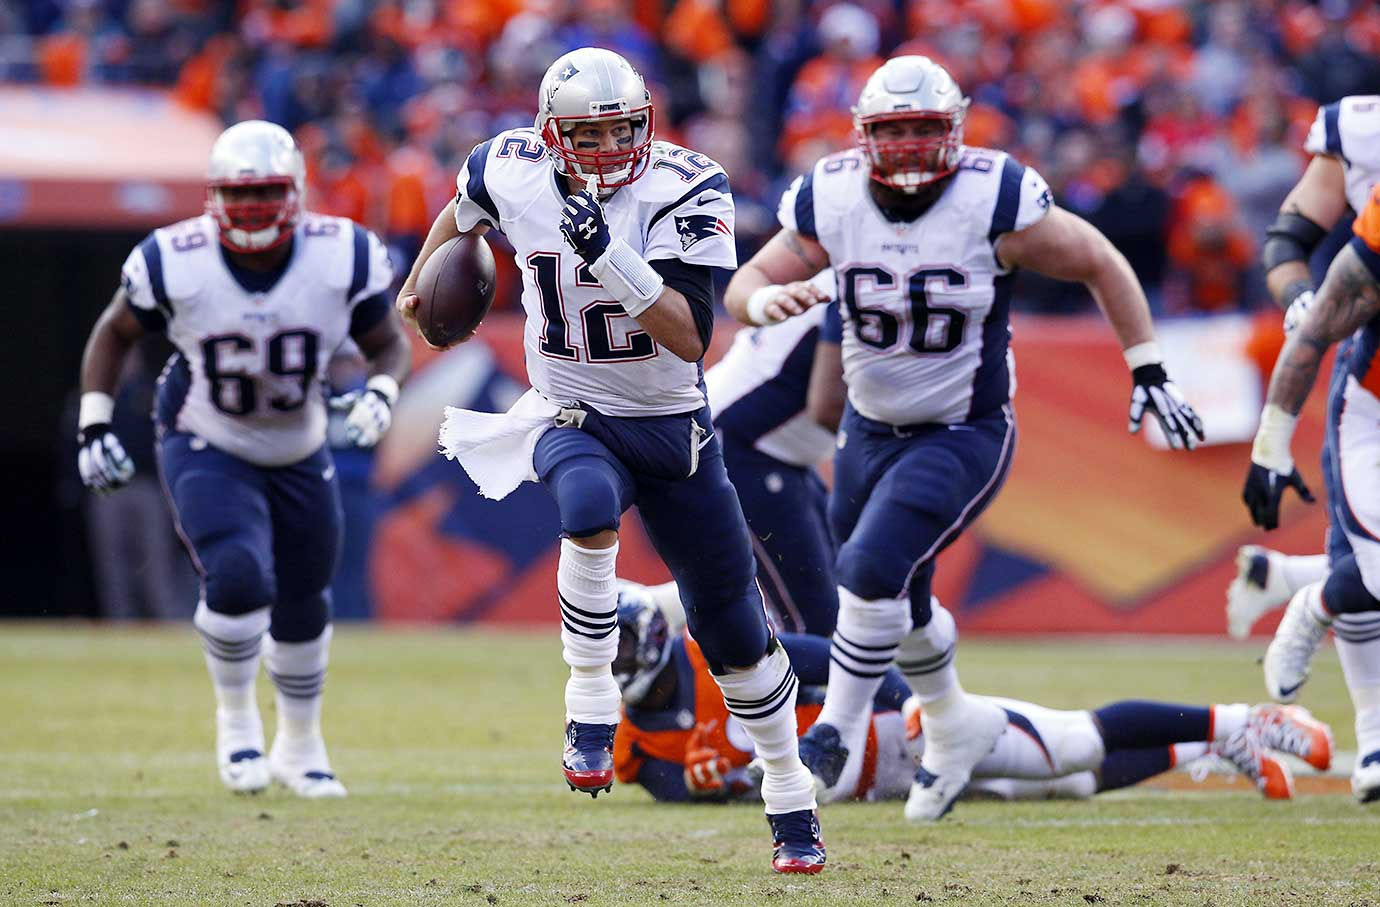 Tom Brady runs for an 11-yard scramble in the second quarter.